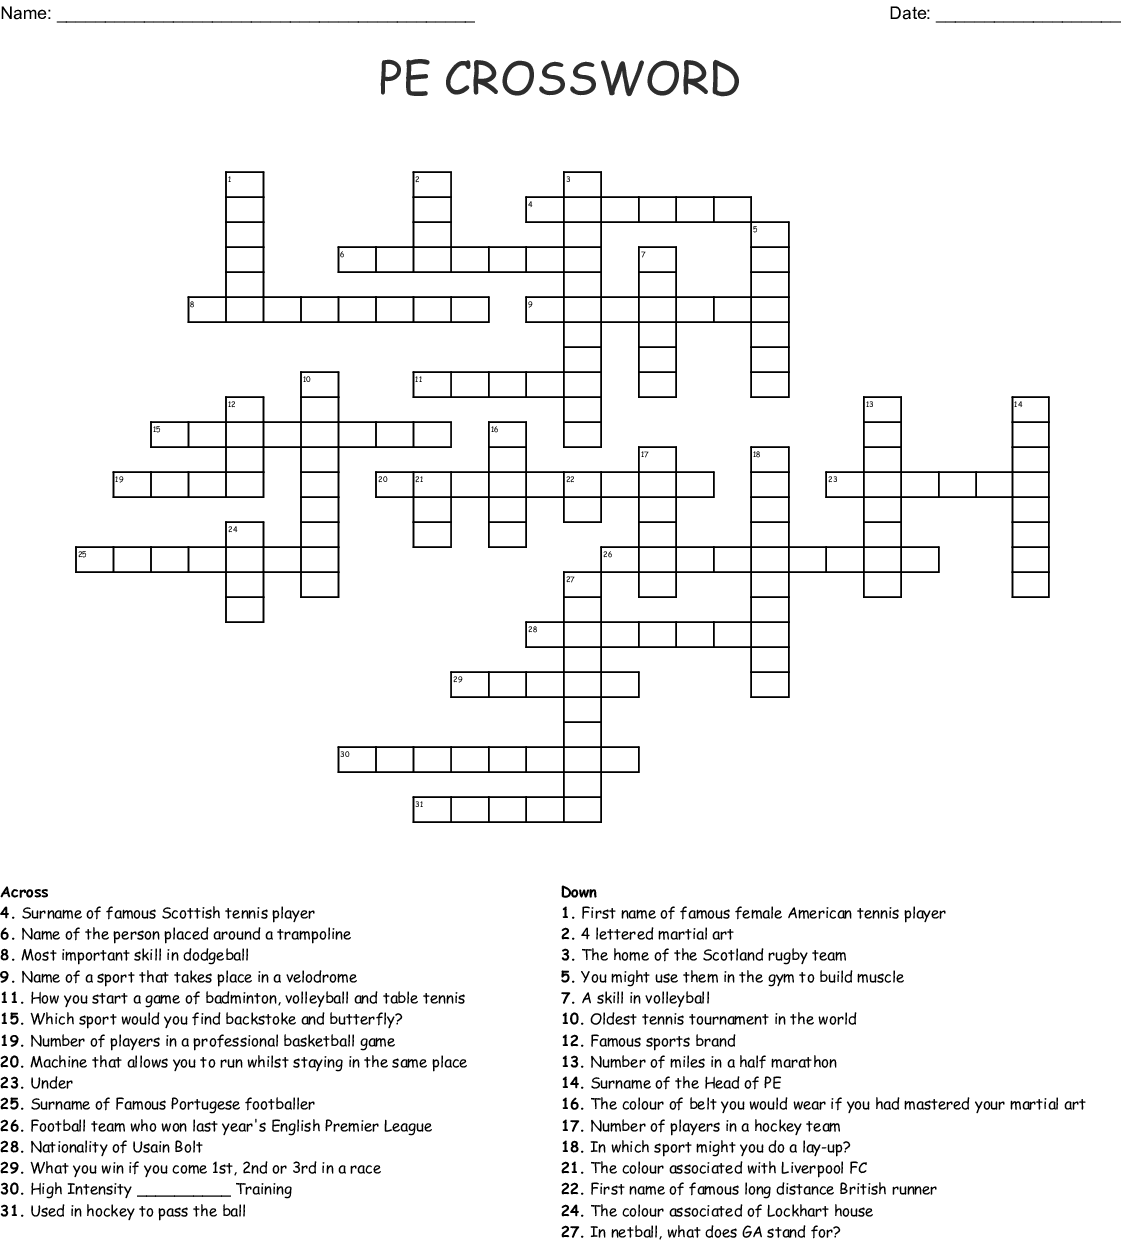 Physical Education Crossword